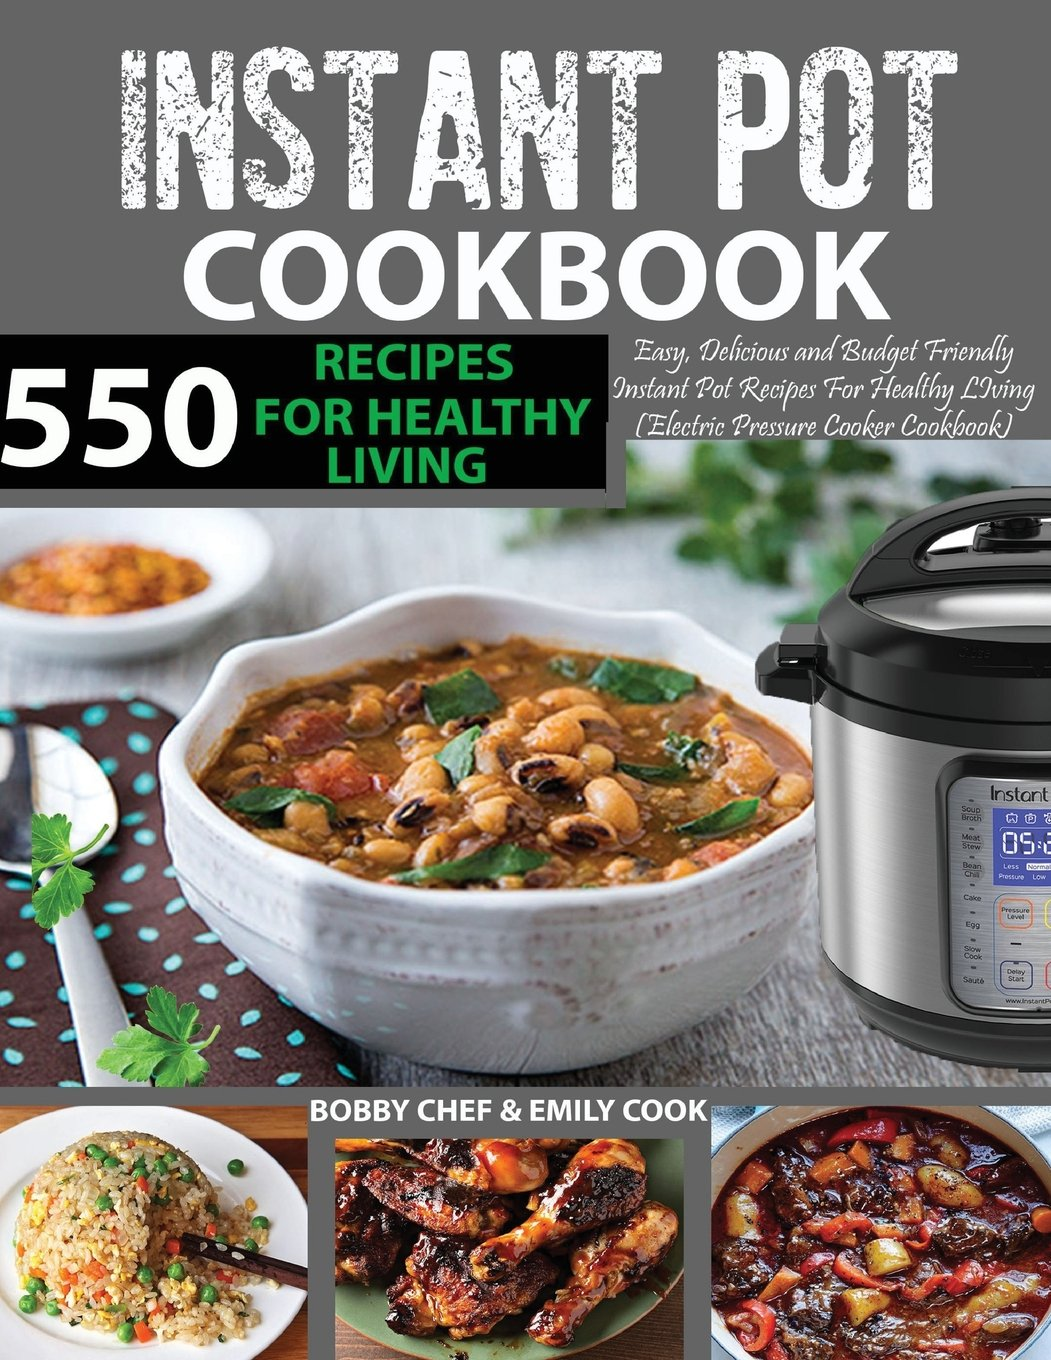 550 Instant Pot Recipes Cookbook: Easy, Delicious and Budget Friendly Instant Pot Recipes for Healthy Living (Electric Pressure Cooker Cookbook) ... Recipes Included) (Instant Pot Cookbook) pdf